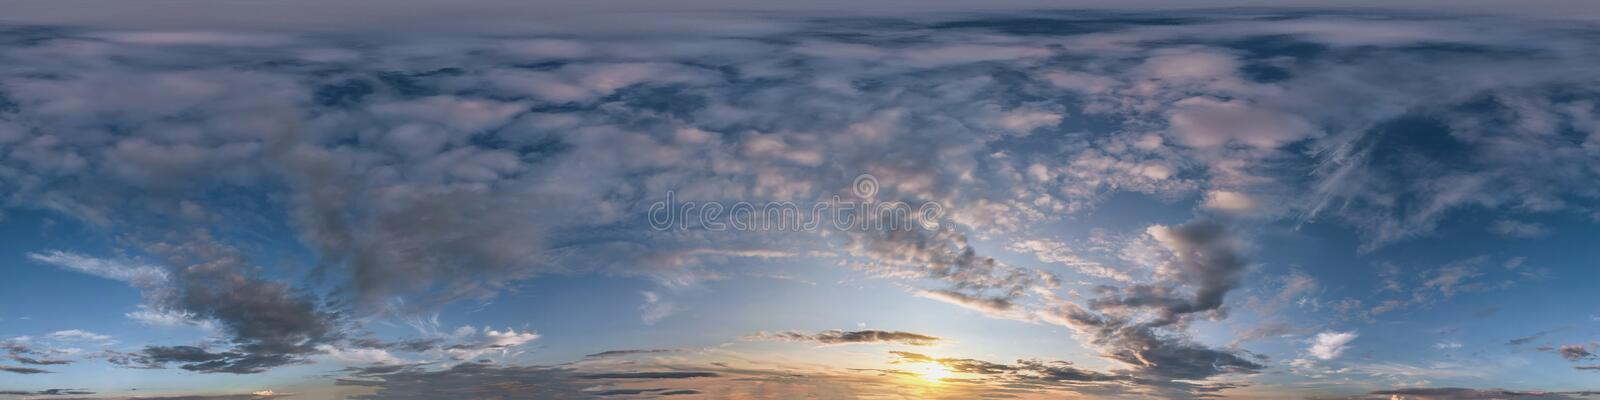 Seamless dark sky after sunset hdri panorama 360 degrees angle view with beautiful clouds  with zenith for use in 3d graphics as. Sky dome or edit drone shot stock photo